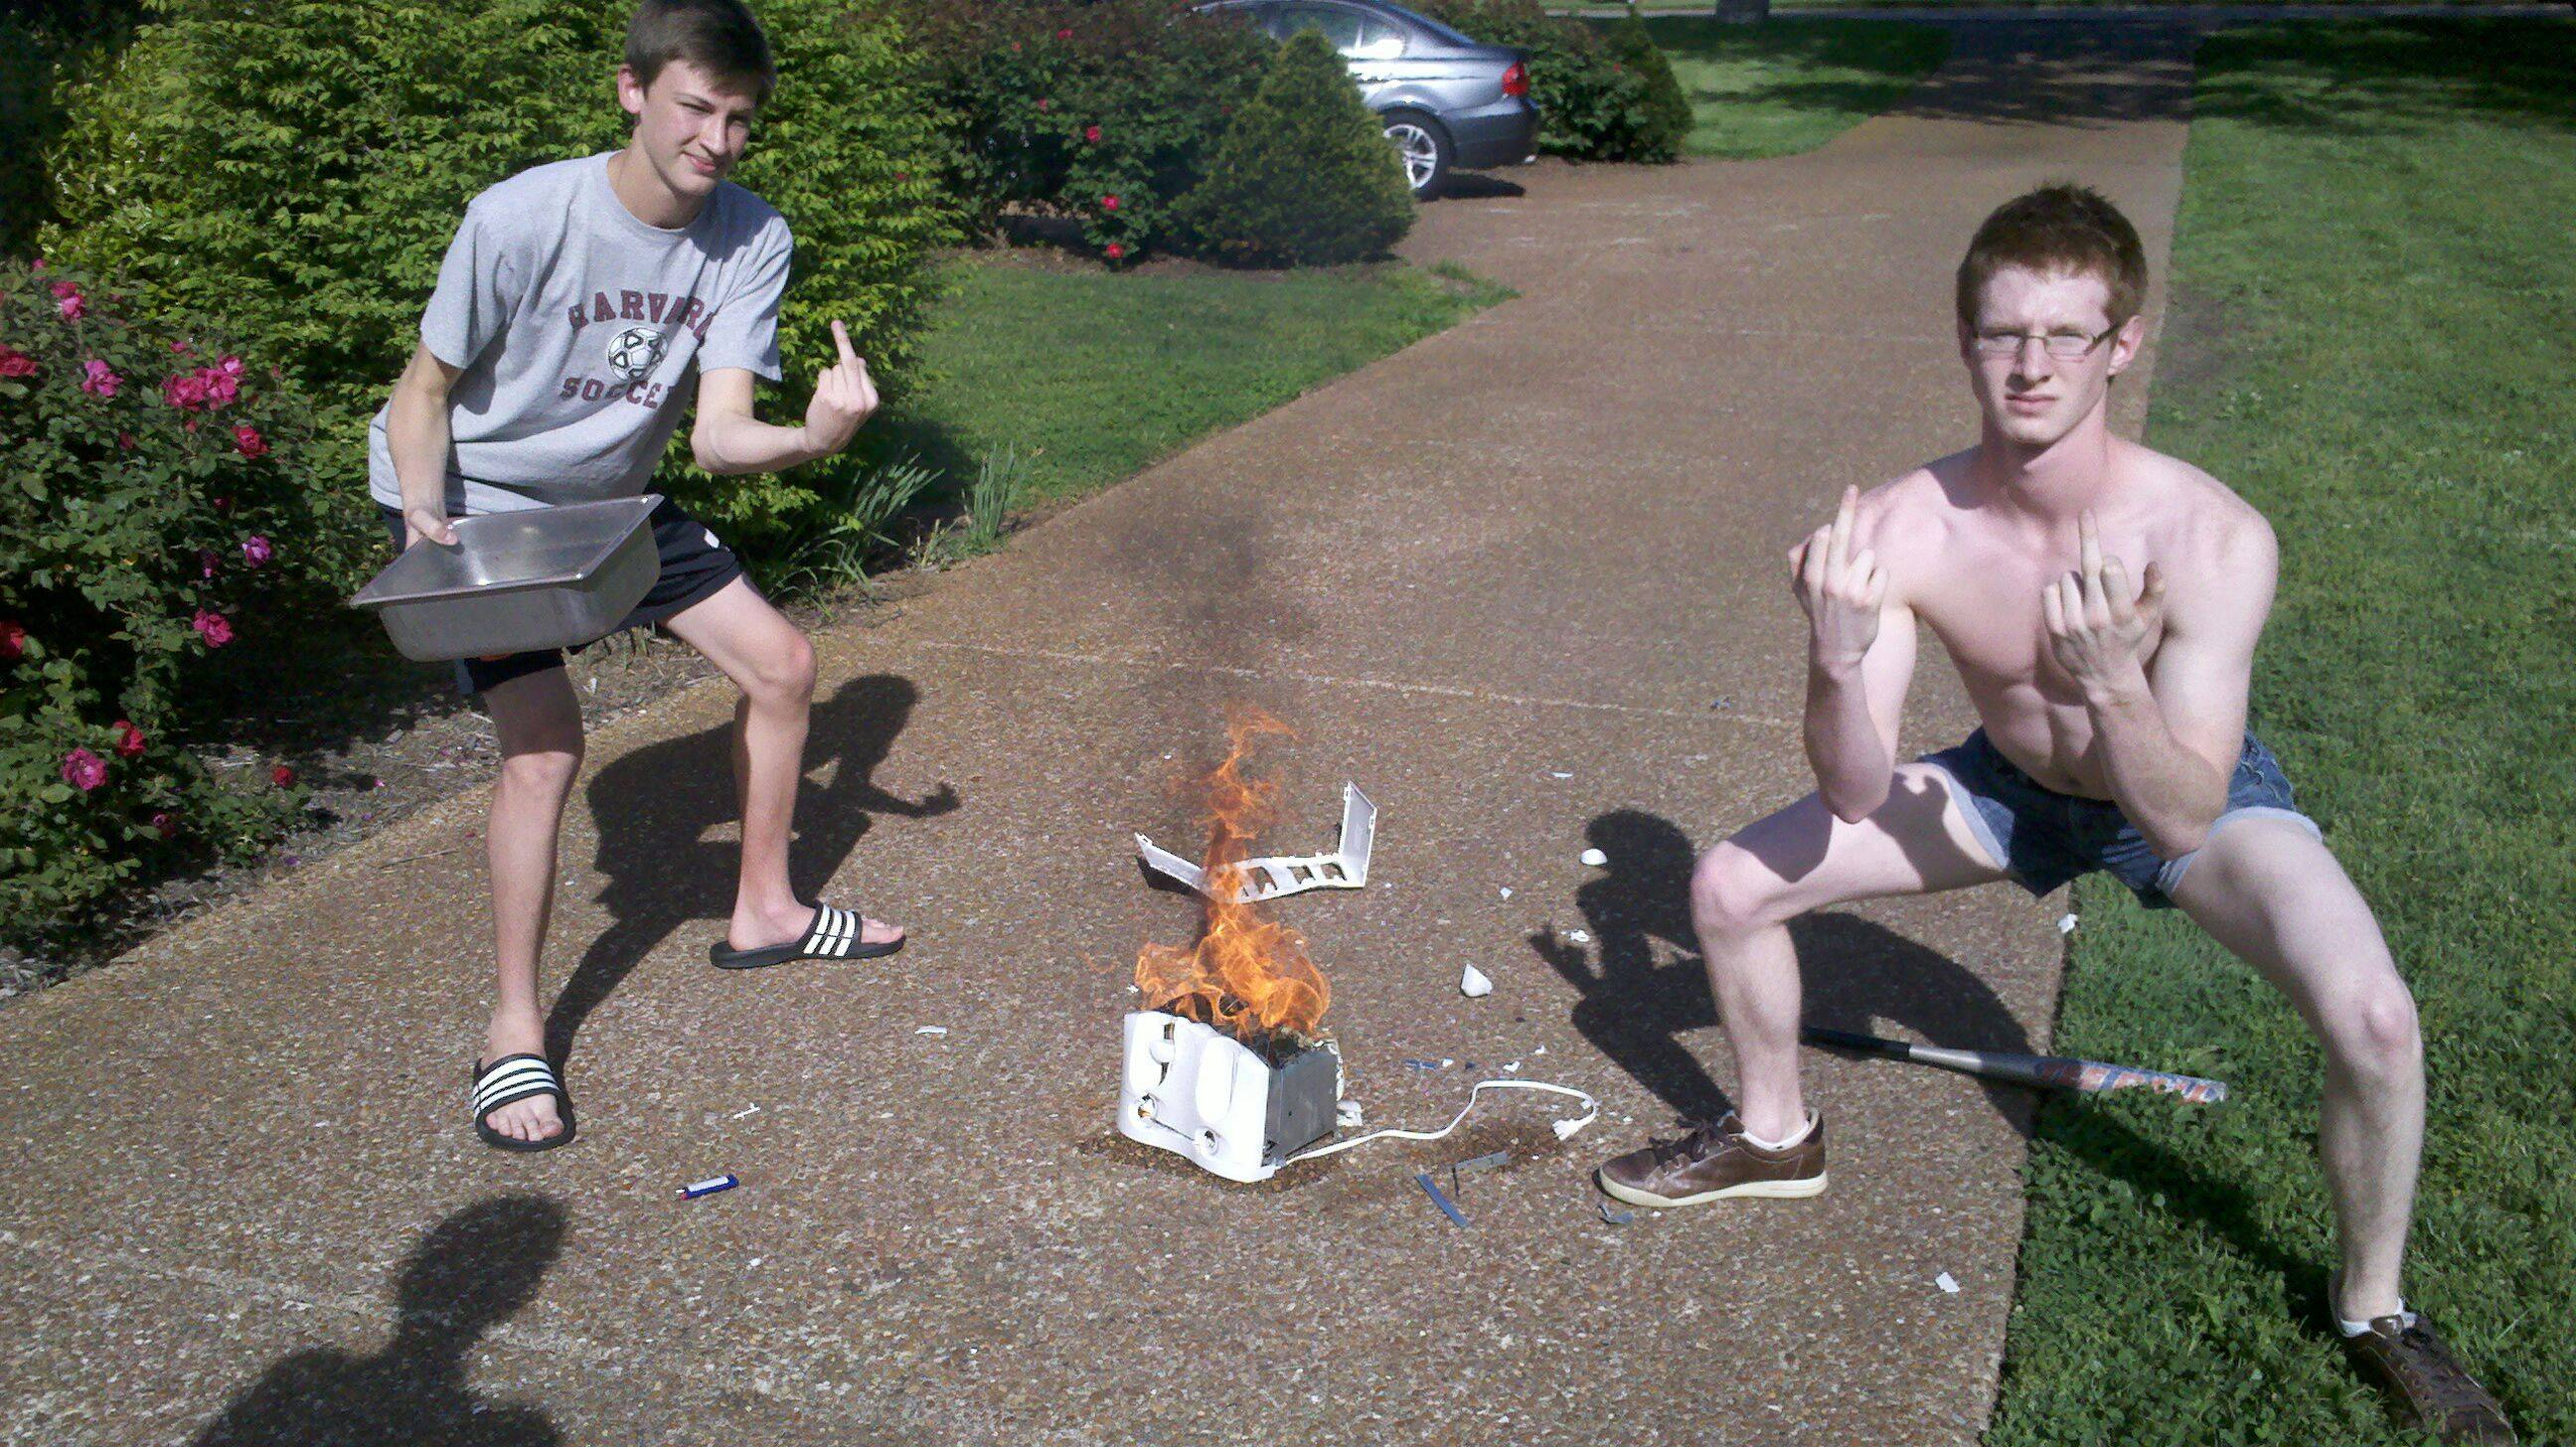 These toaster burning badasses